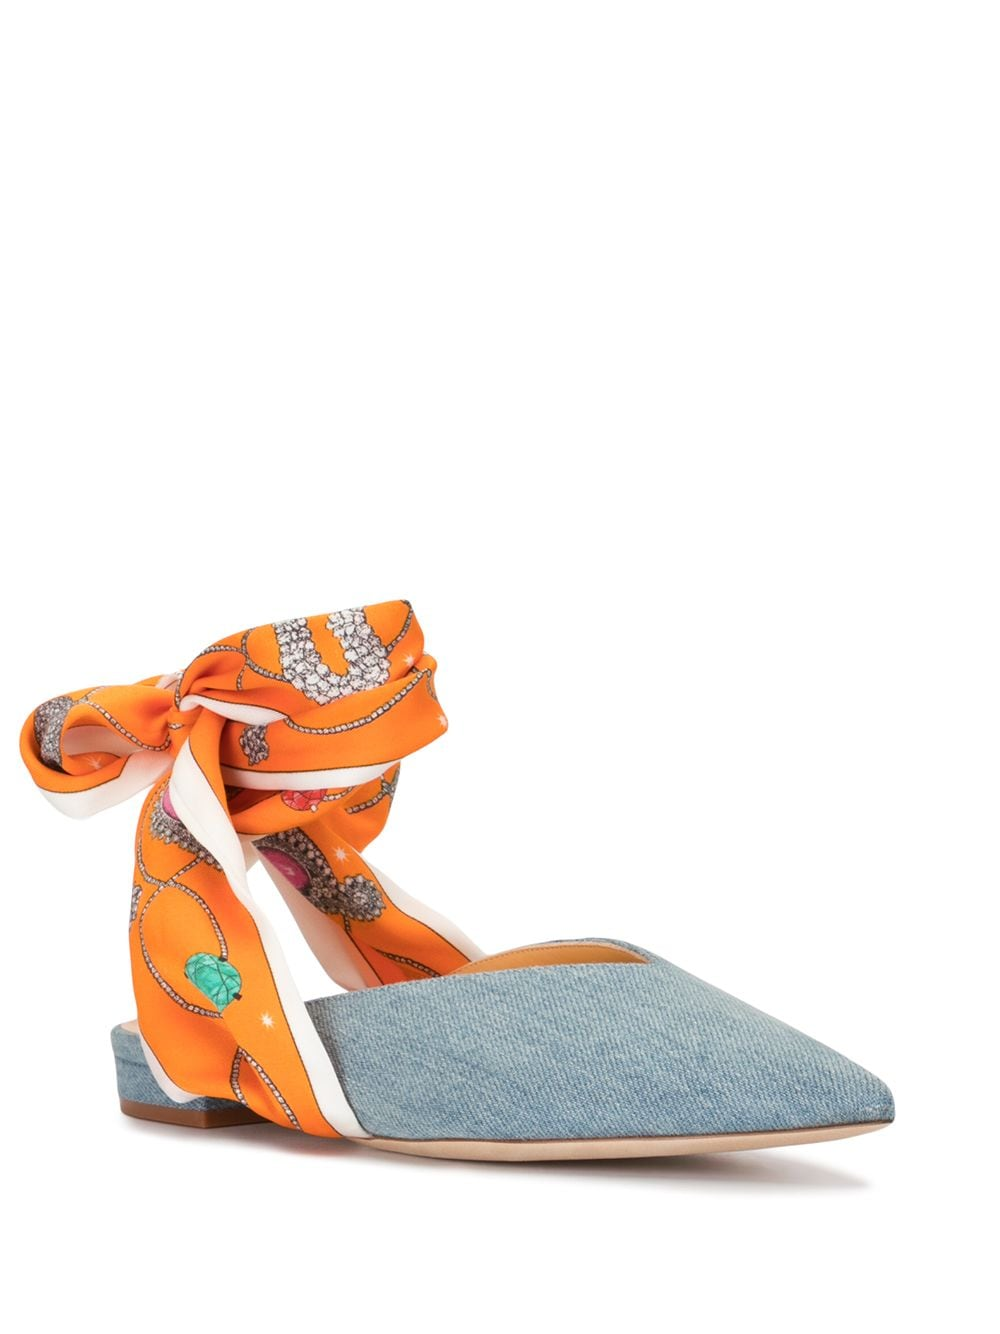 Giannico Ankle Wrap Mules